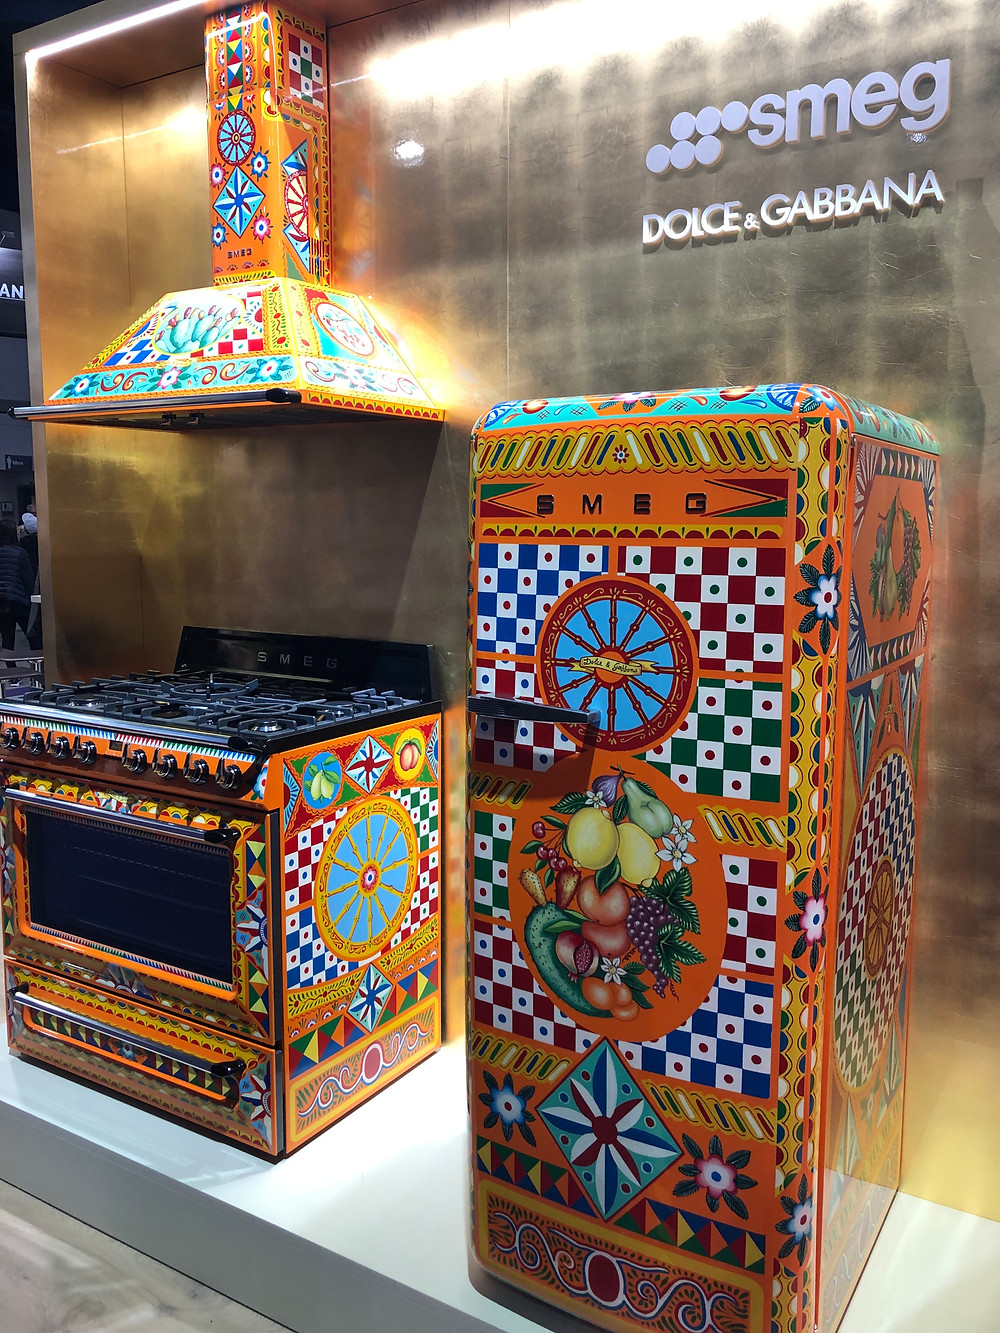 Smeg Dolce & Gabbana hand painted appliances KBIS 2019